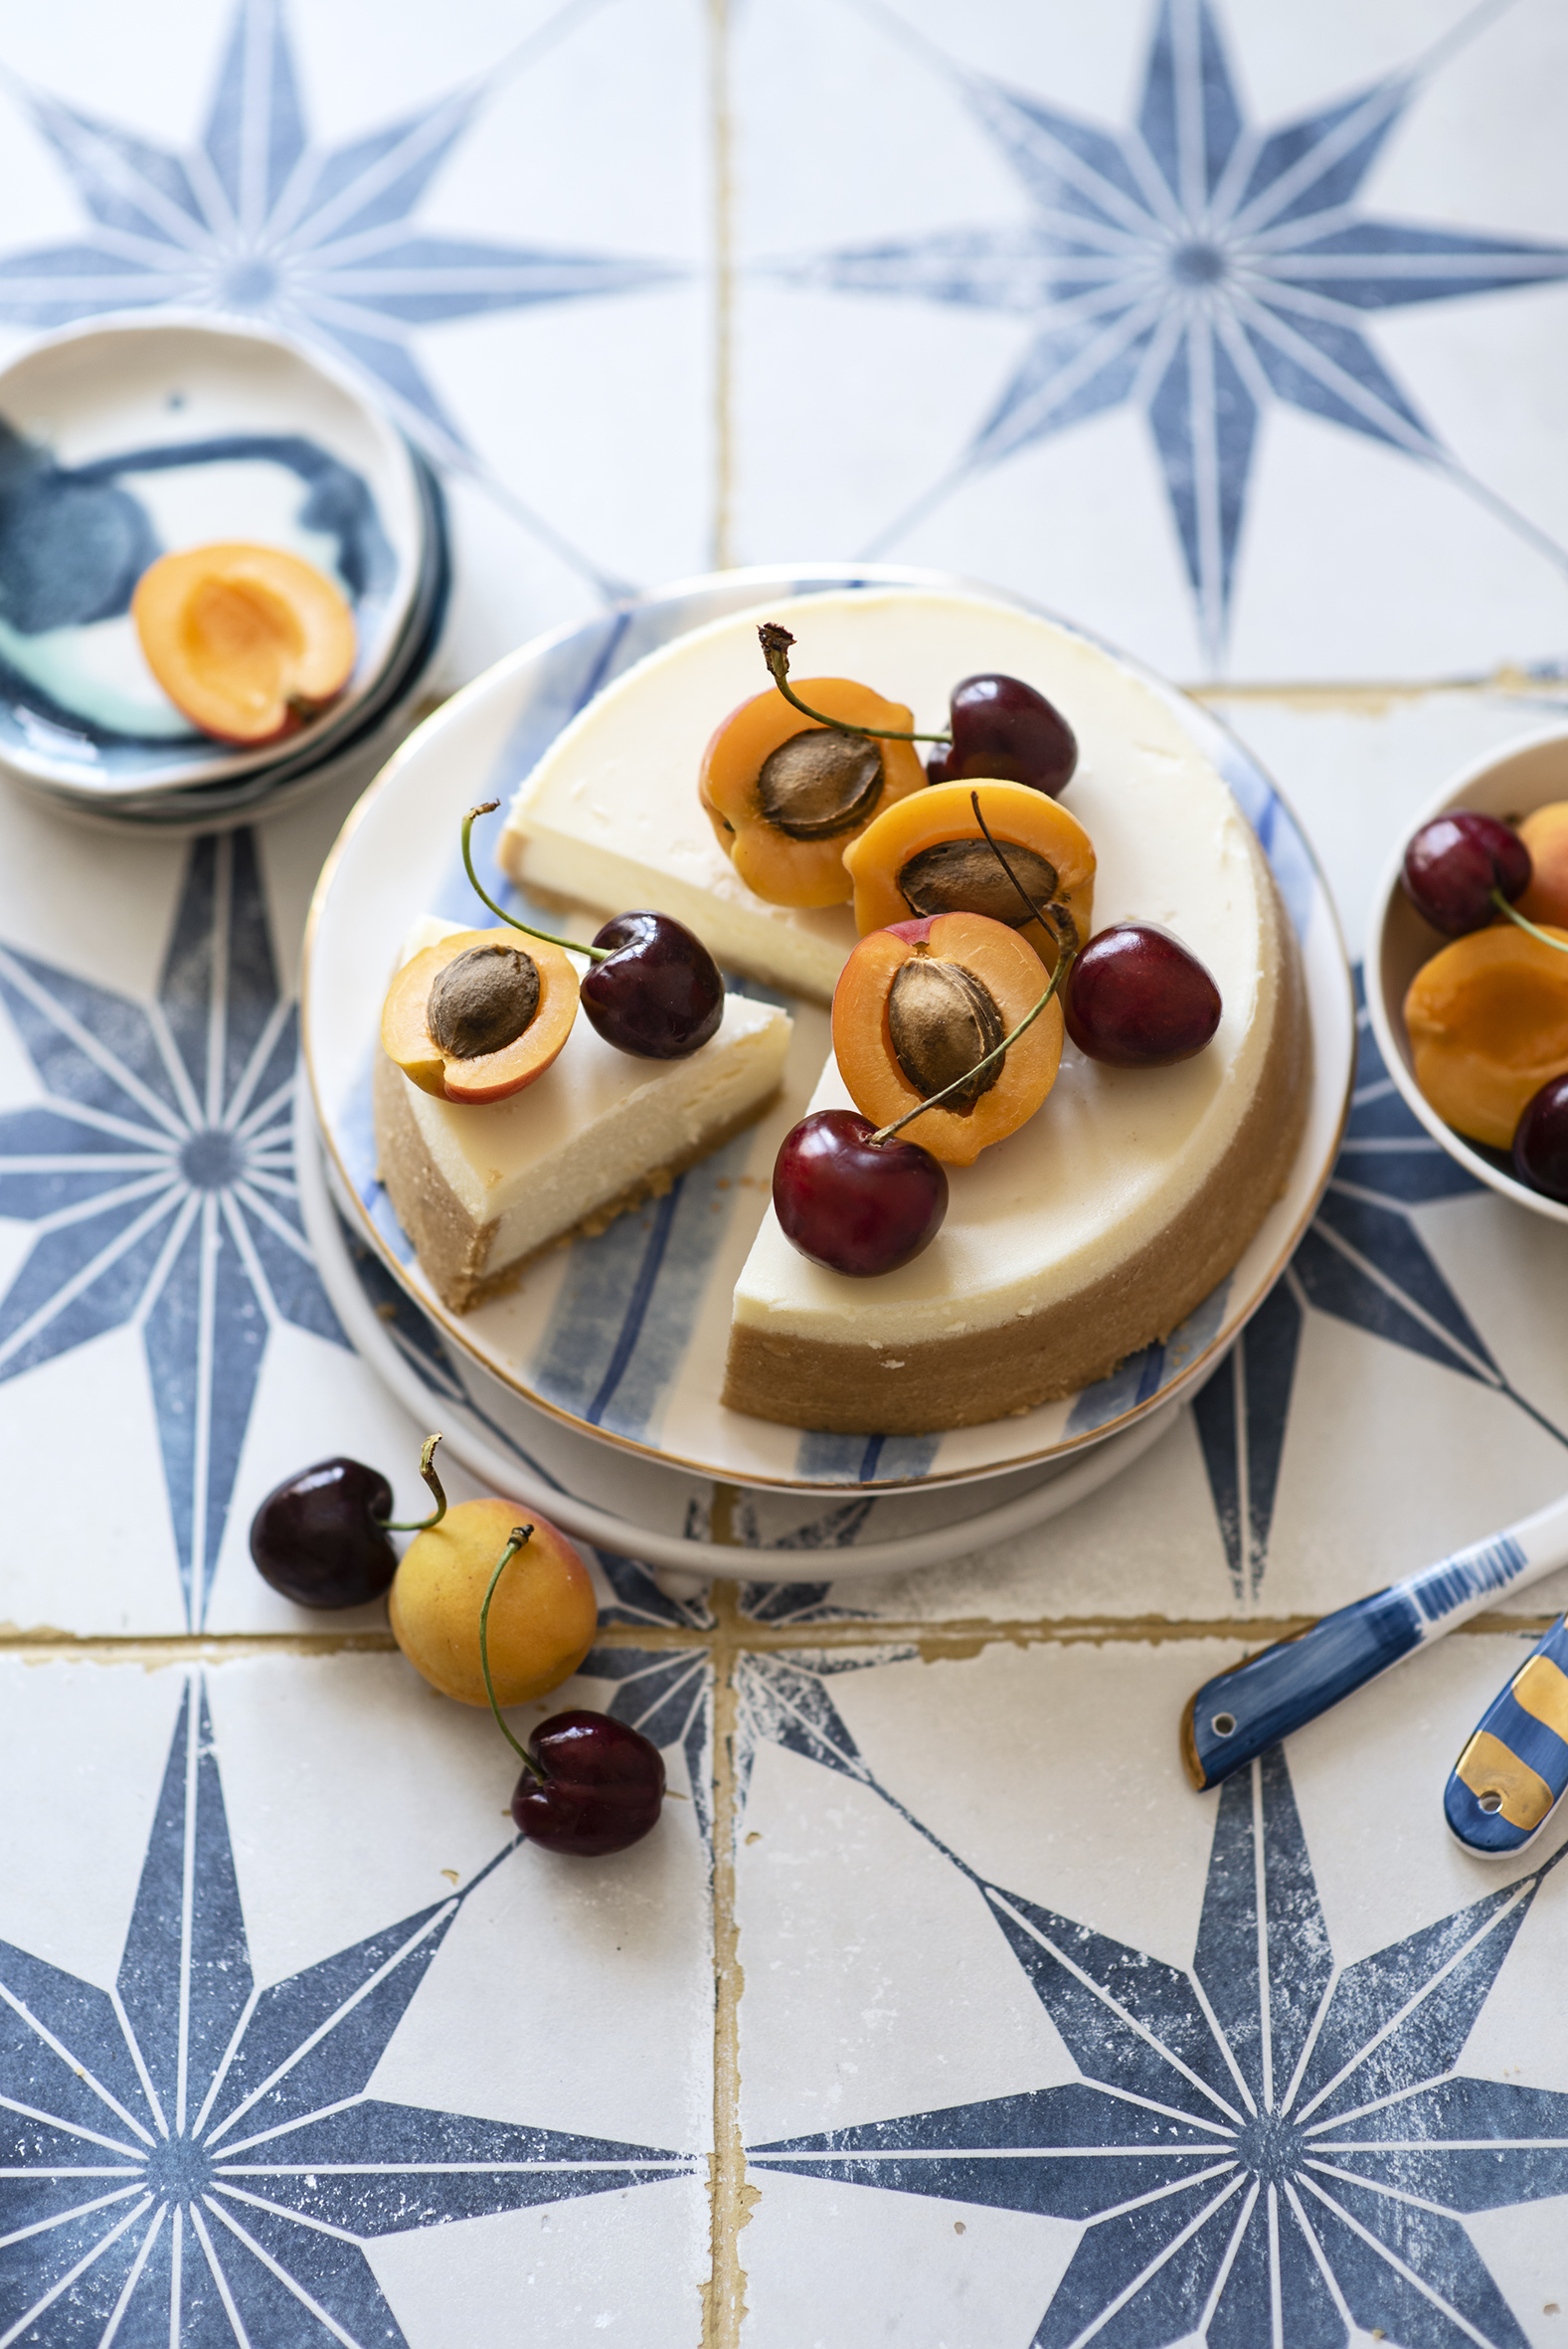 Wallpaper Apricot Cheesecake Cherry Food Plate  for Mobile phone